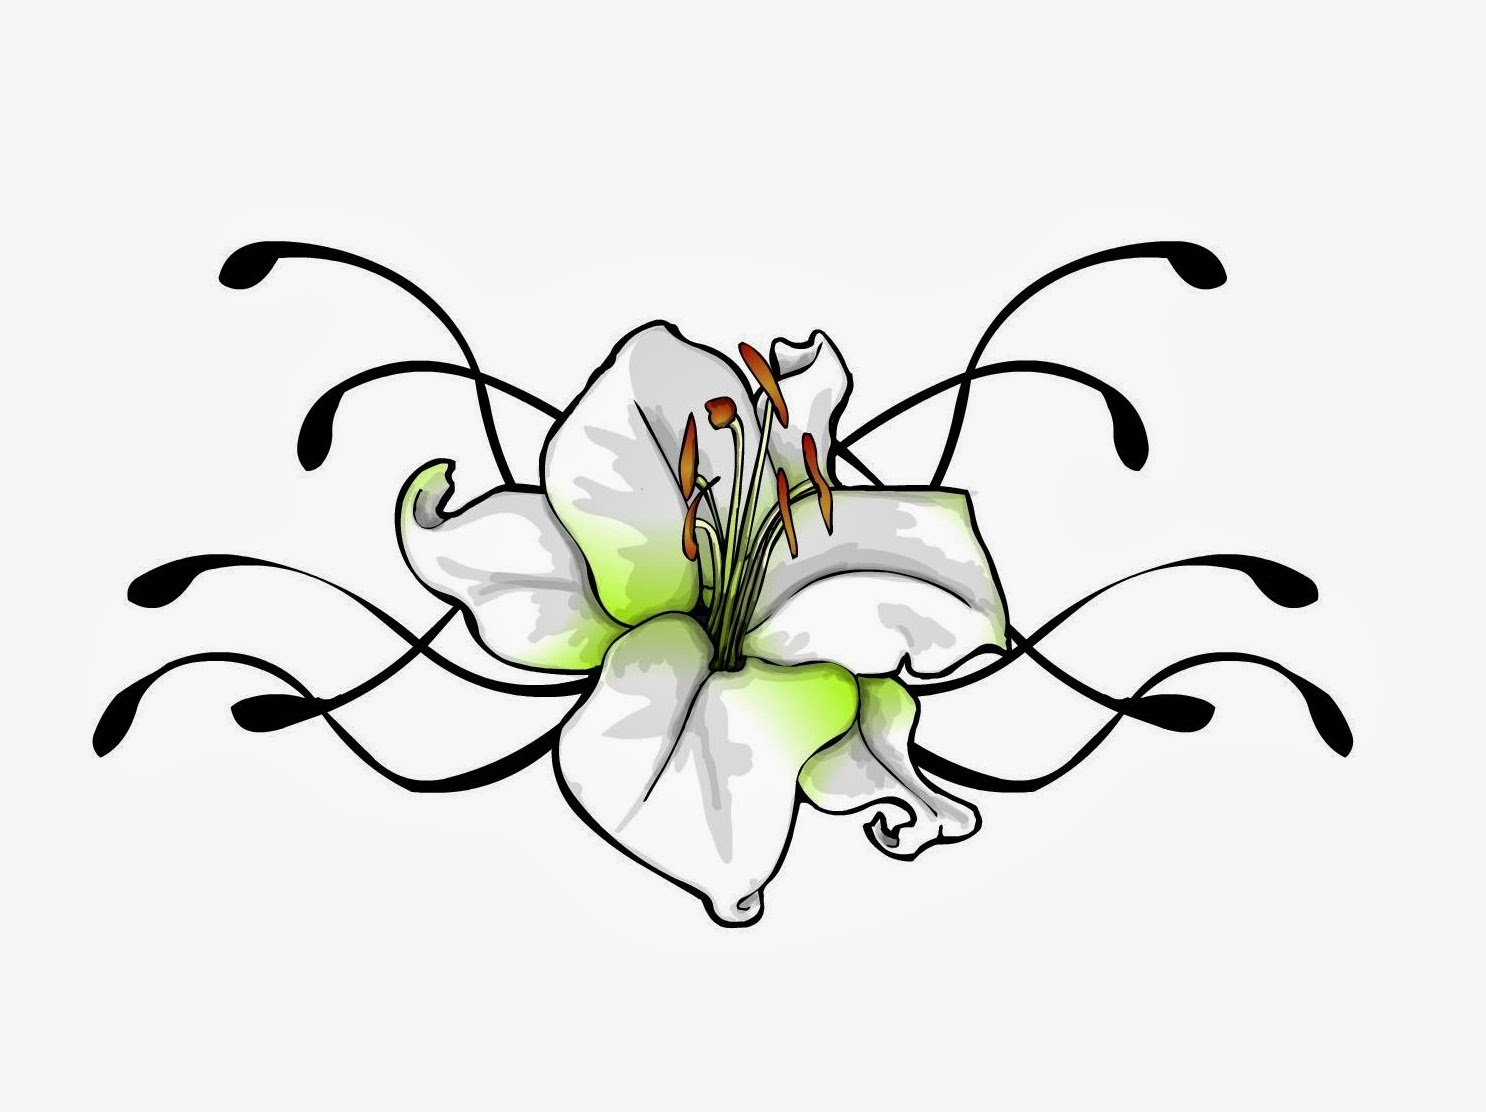 Lily flowers tattoo drawing wallpapers lily flowers tattoo drawing izmirmasajfo Choice Image